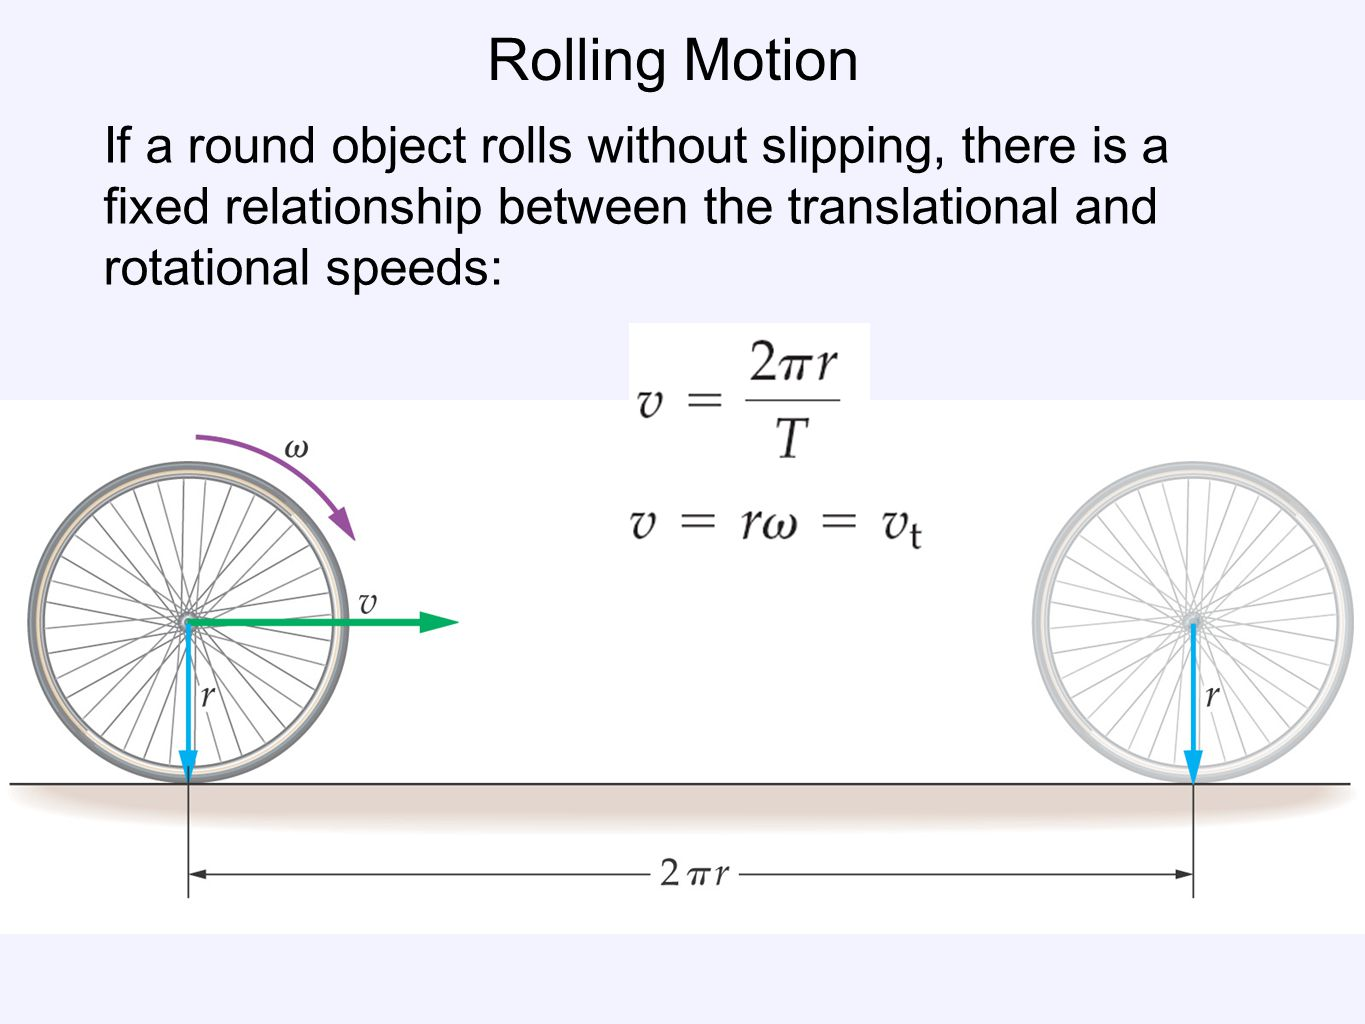 Rolling Motion If a round object rolls without slipping, there is a fixed relationship between the translational and rotational speeds: